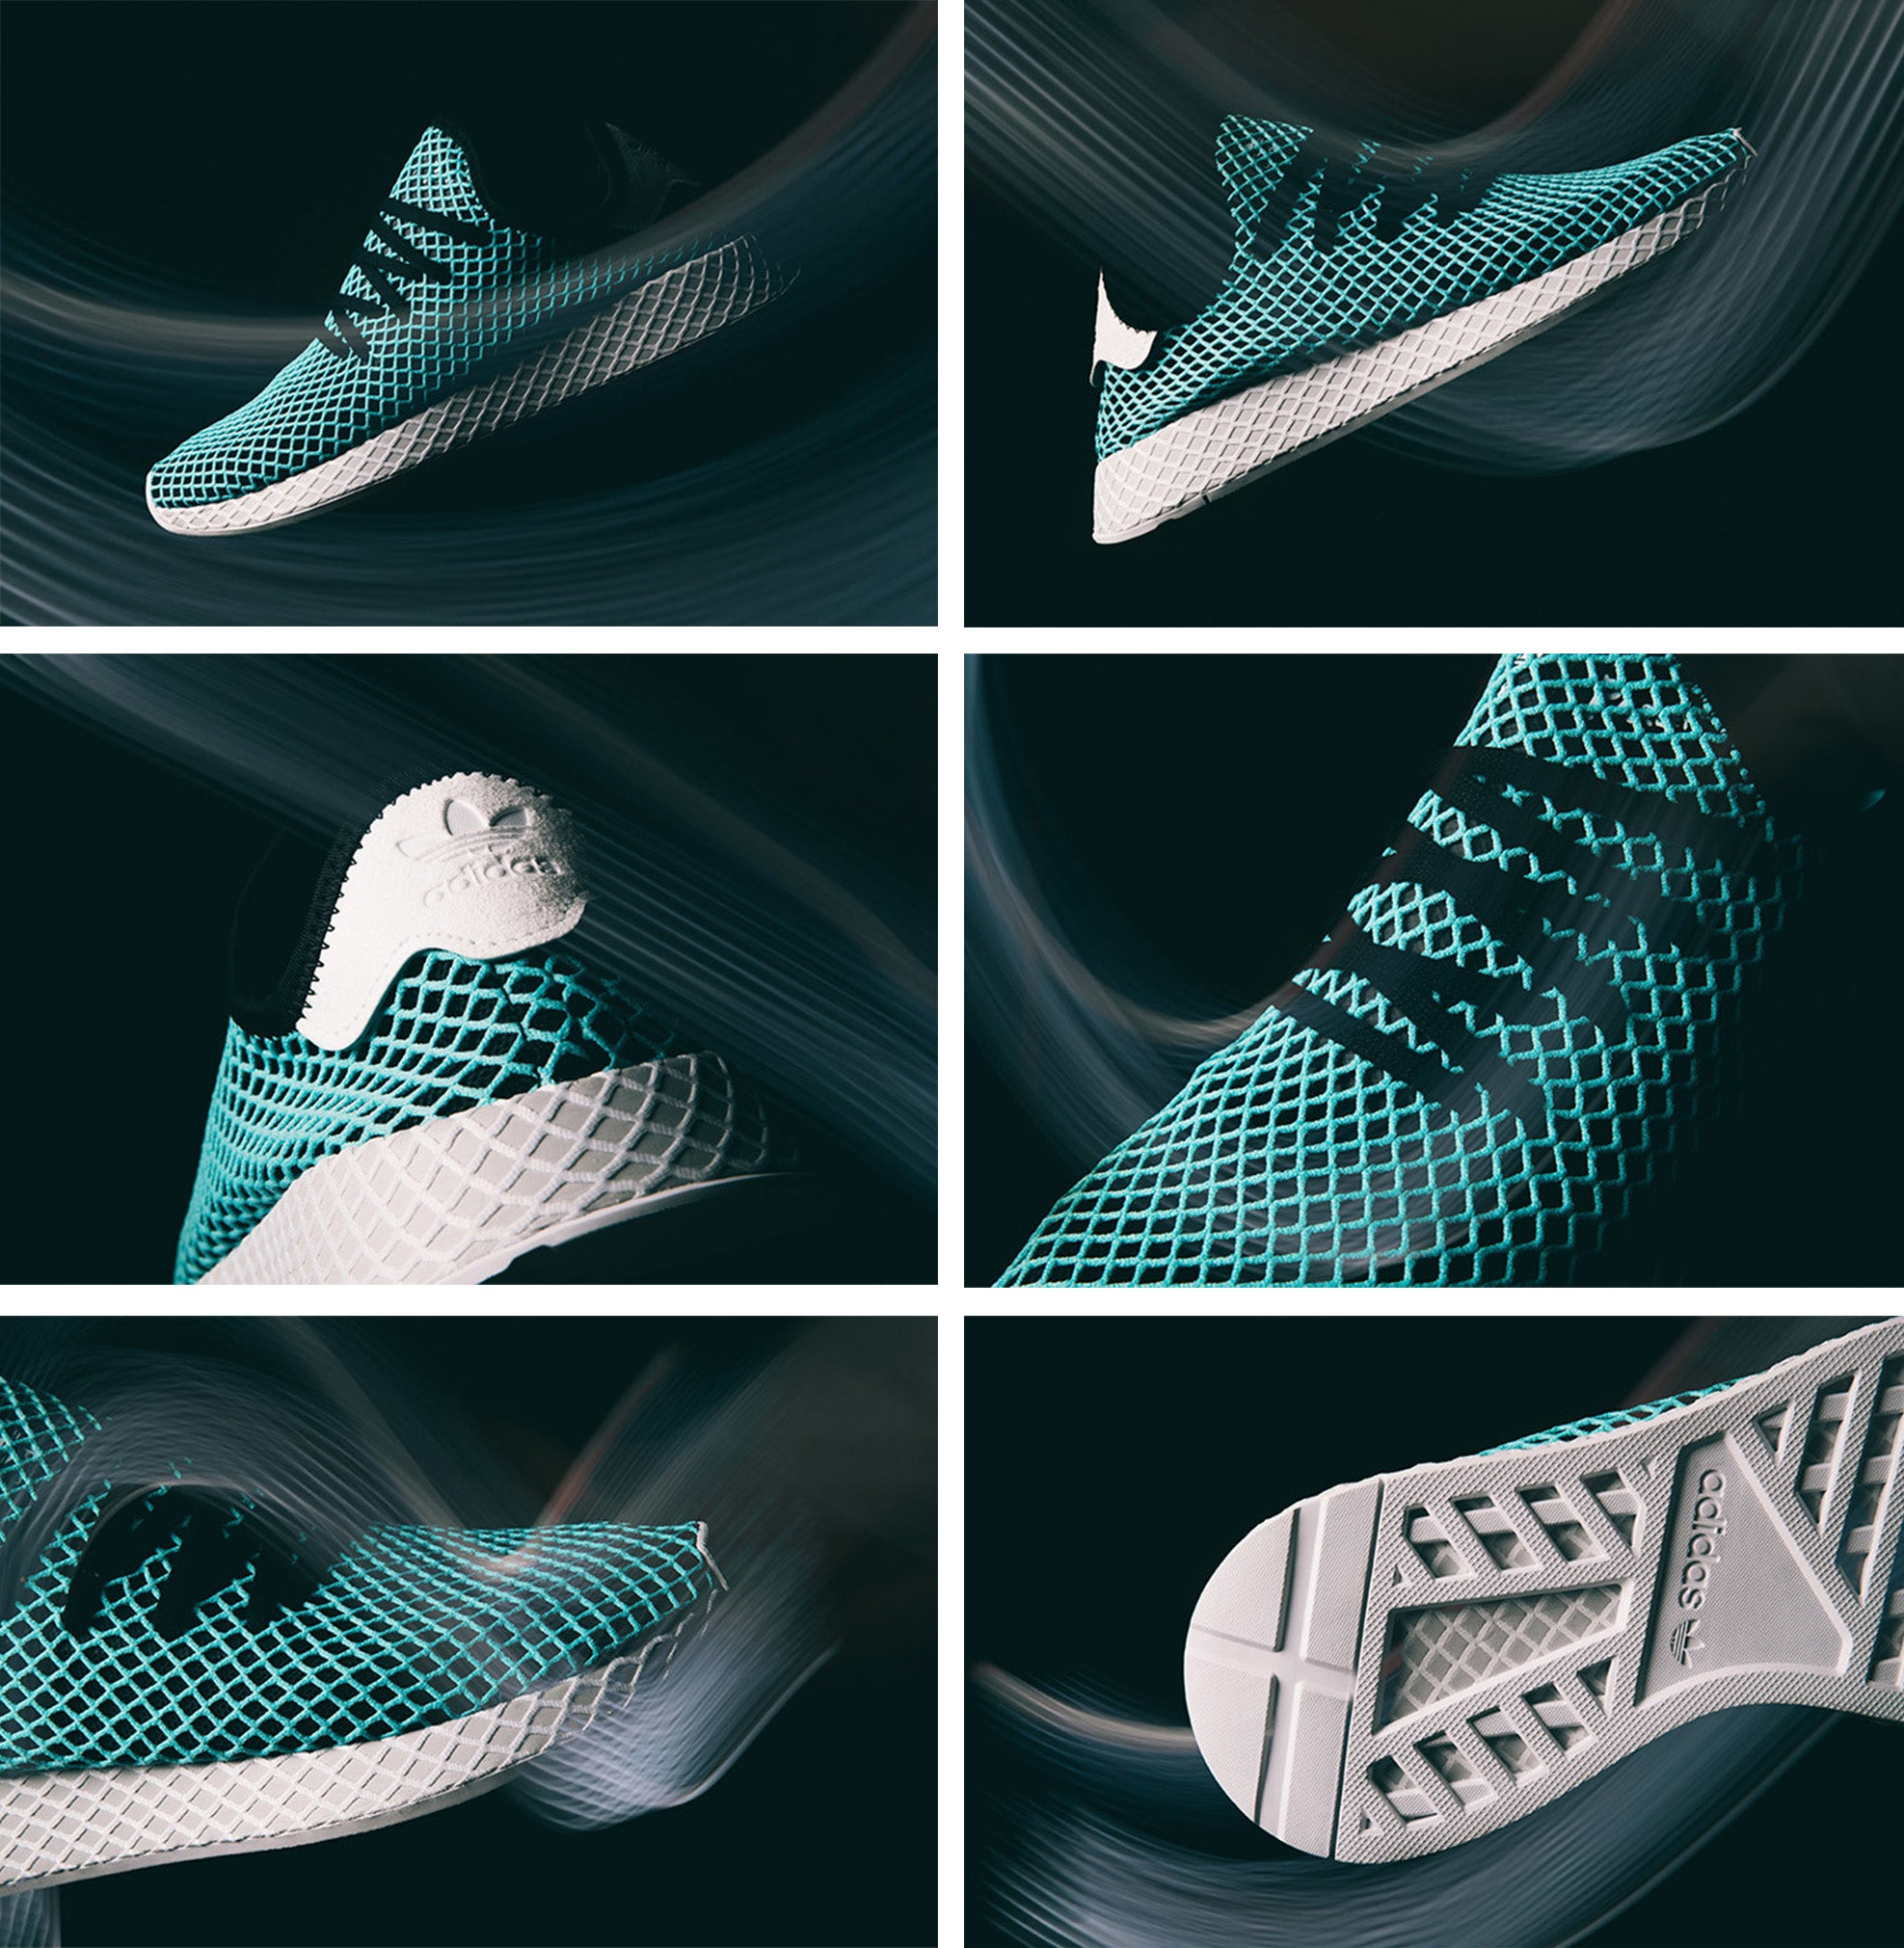 ddab8f1568468 The Parley x adidas Deerupt available now in both unique mens and womens  colourways.